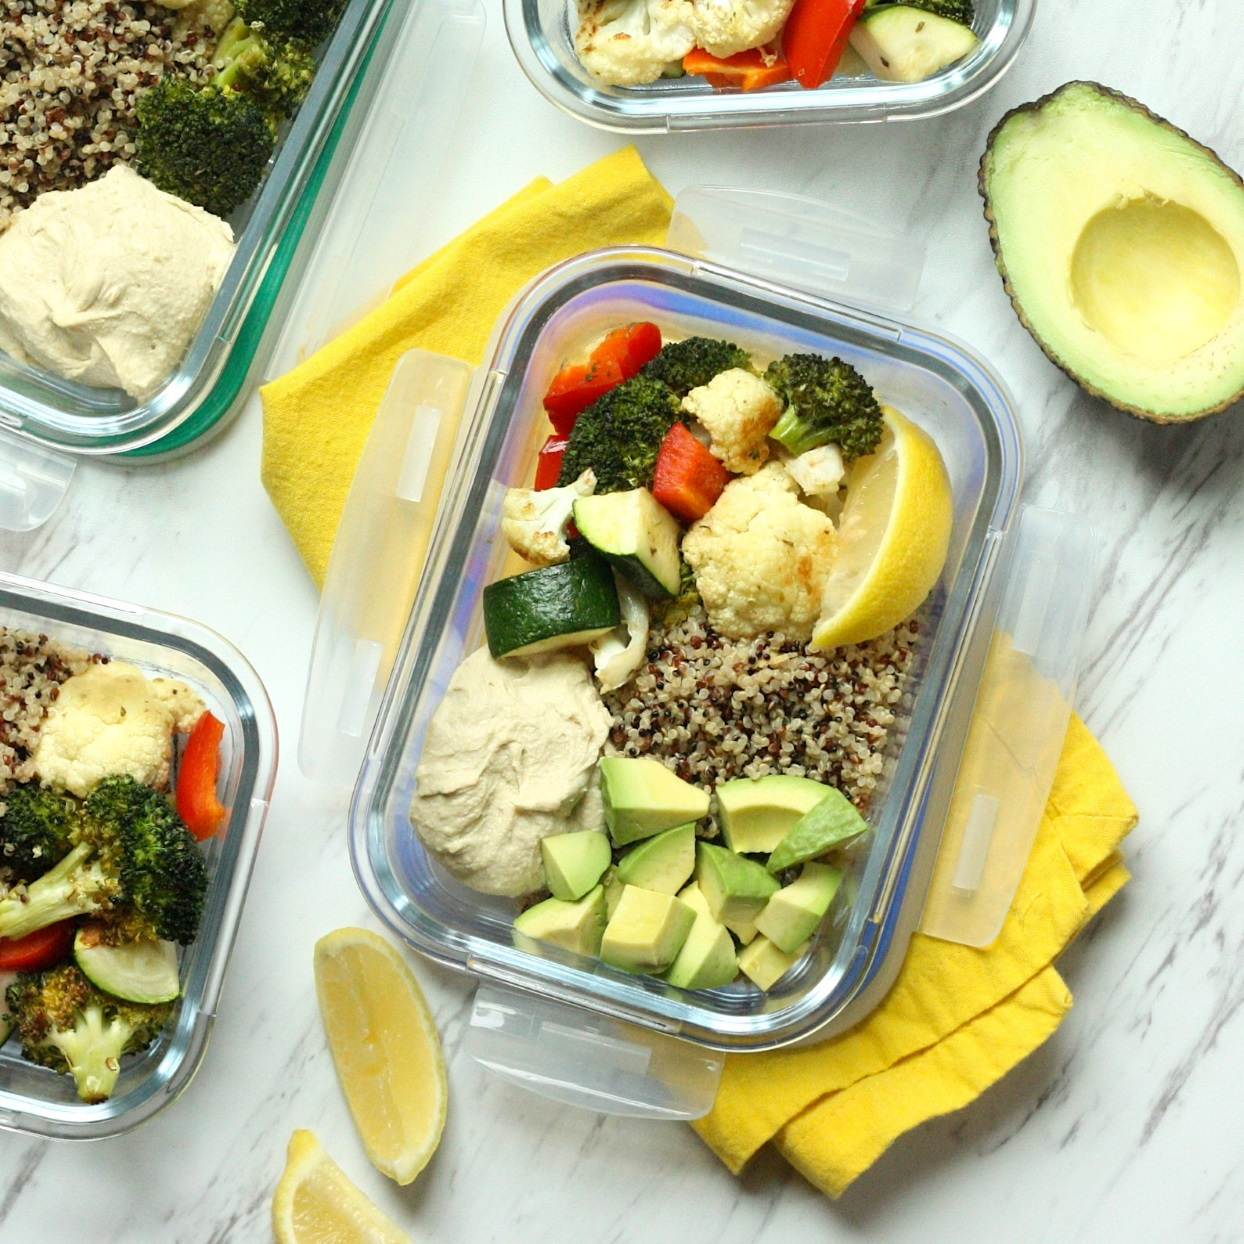 Brimming with colorful roasted vegetables, these plant-based meal-prep lunch bowls are high in fiber to keep you full through the afternoon. The easy roasted veggies are based on a popular recipe from our sister magazine (see Associated Recipes). Feel free to use your favorite store-bought hummus to cut down on prep time, or make a batch of your own (see Tip). You can also sub in an 8-ounce microwaveable quinoa pouch to minimize cooking. Source: EatingWell.com, December 2019